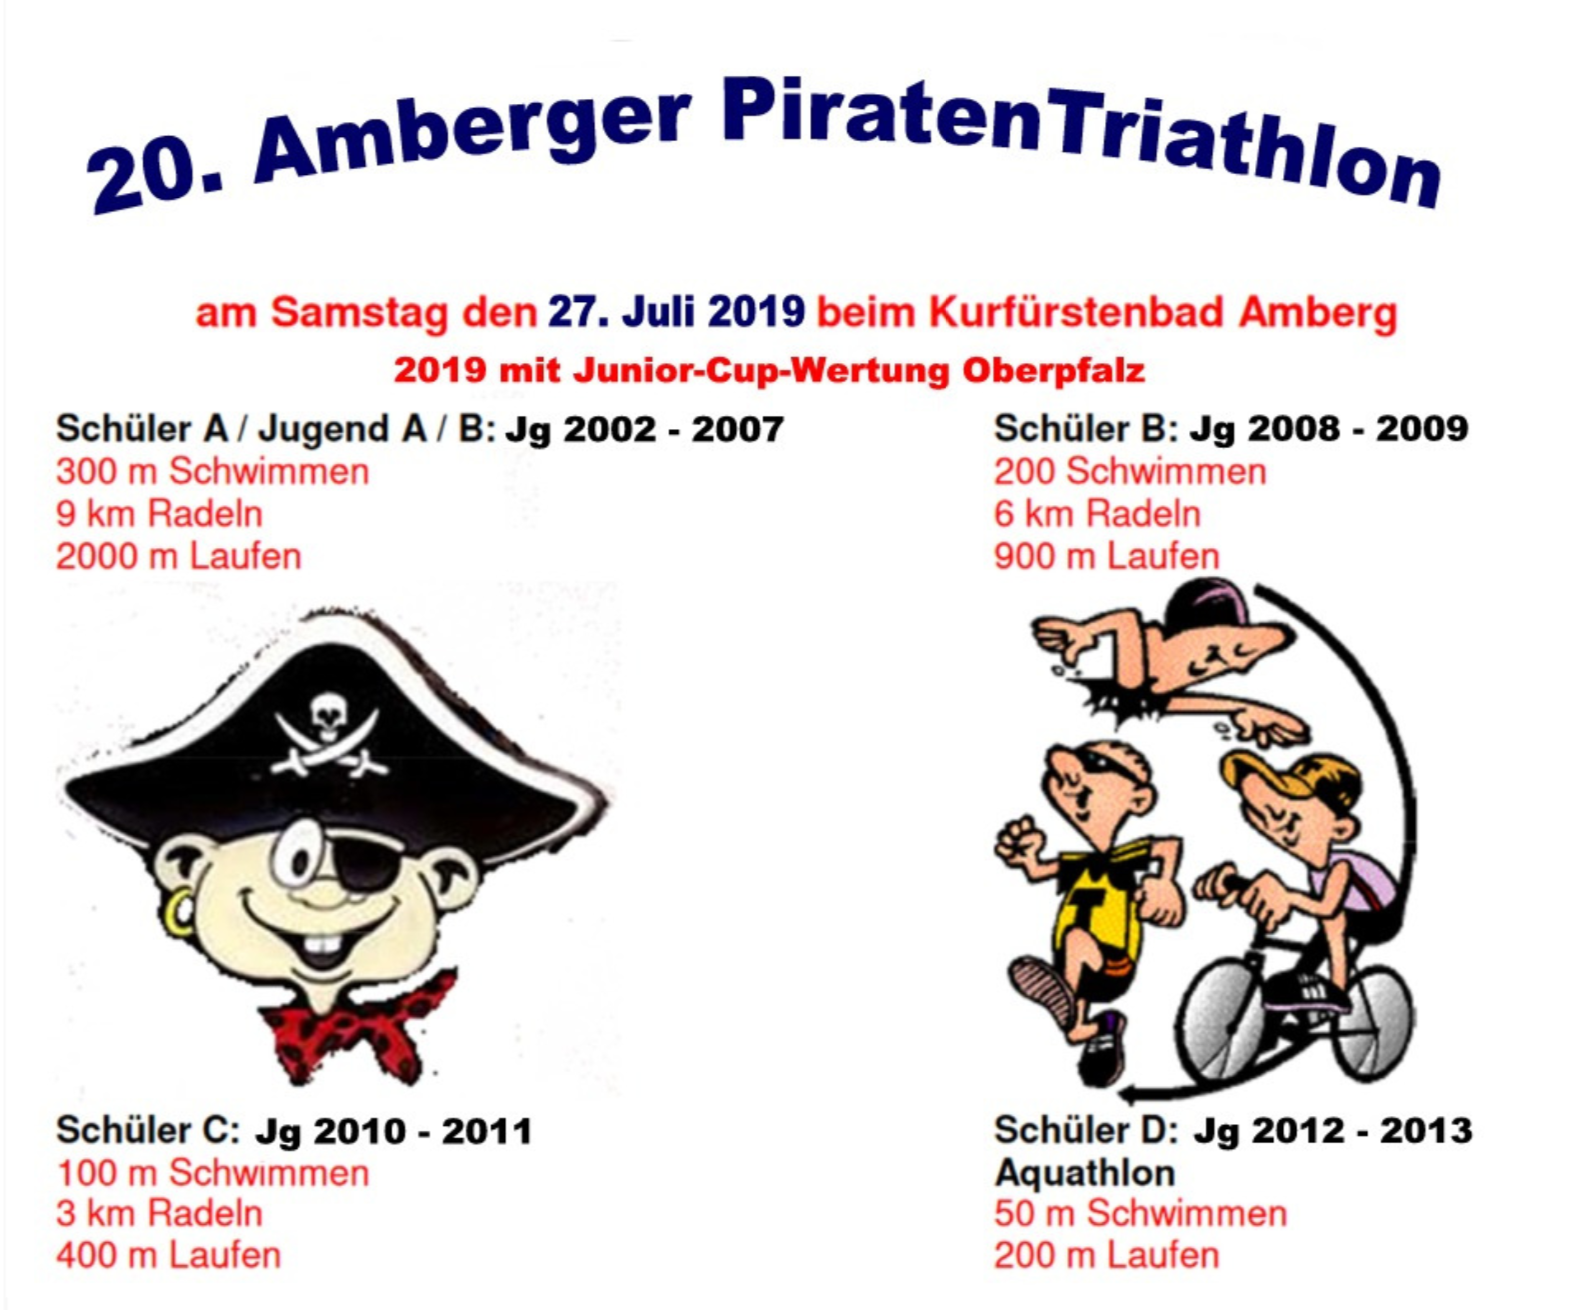 Piratentriathlon 2019